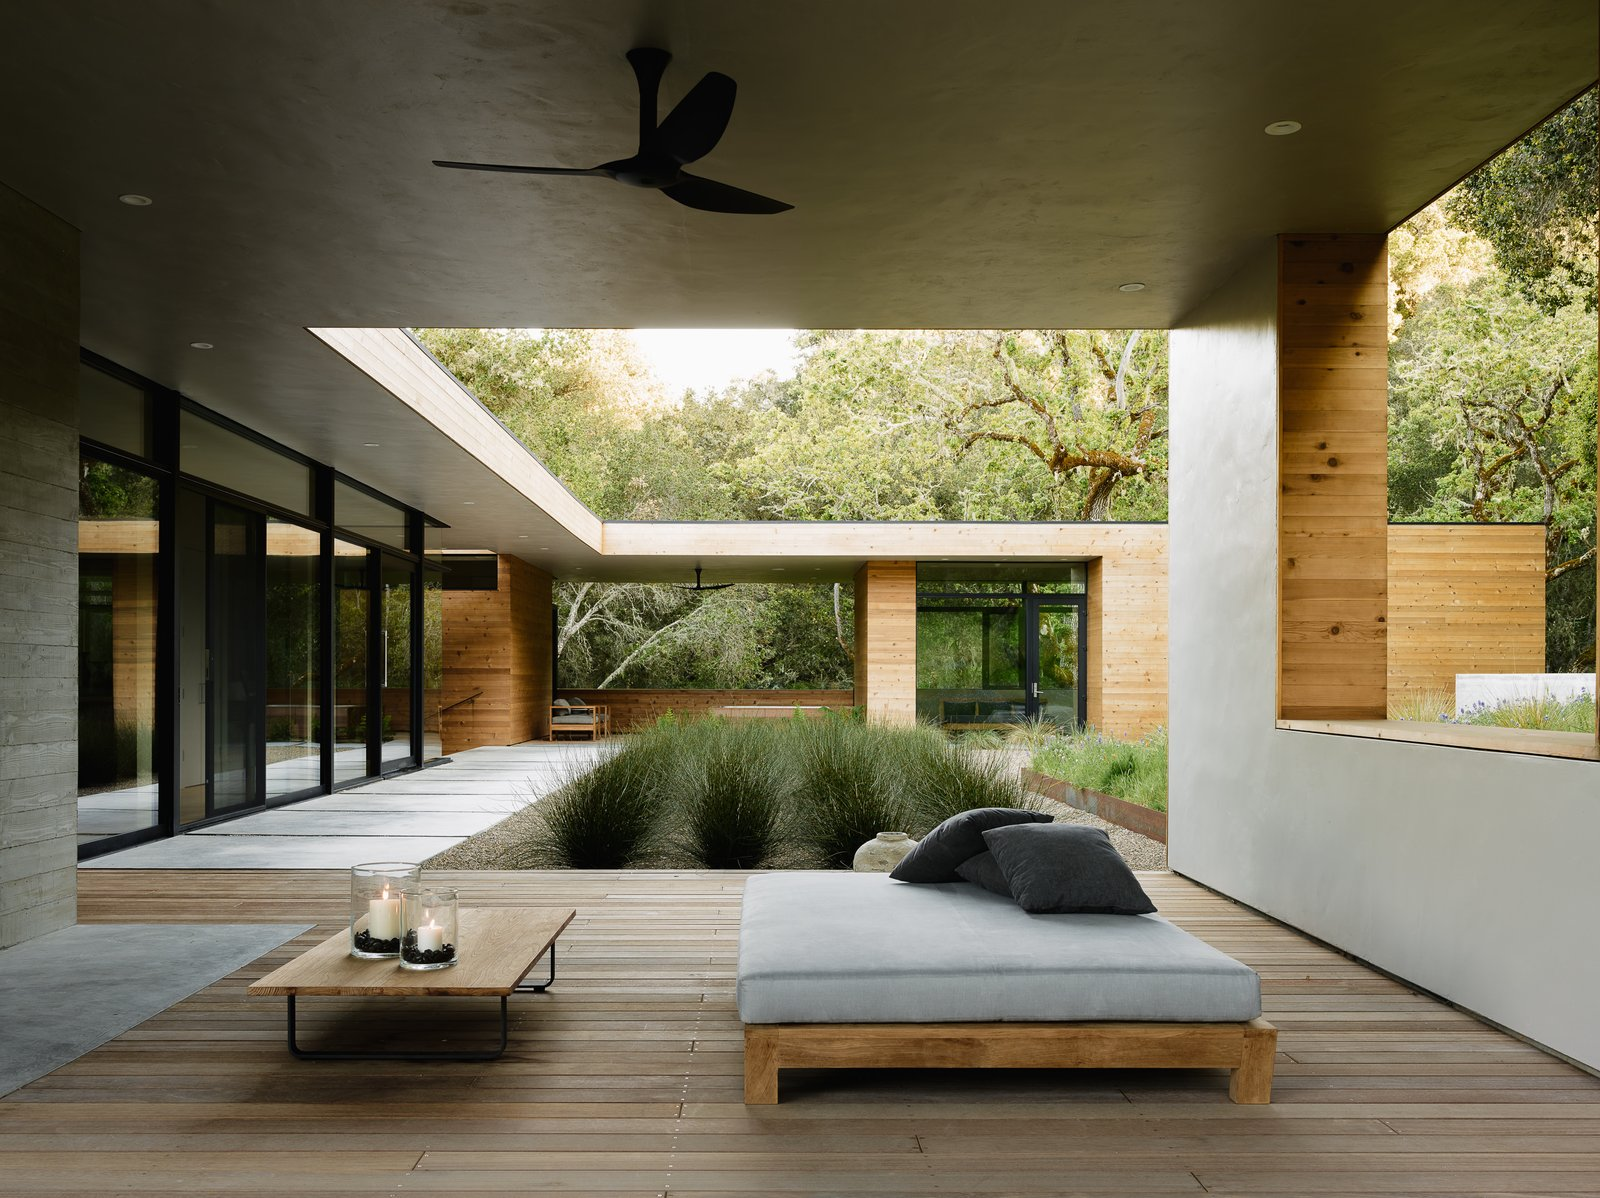 the-courtyard-seamlessly-integrates-the-indoor-and-outdoor-space.jpg